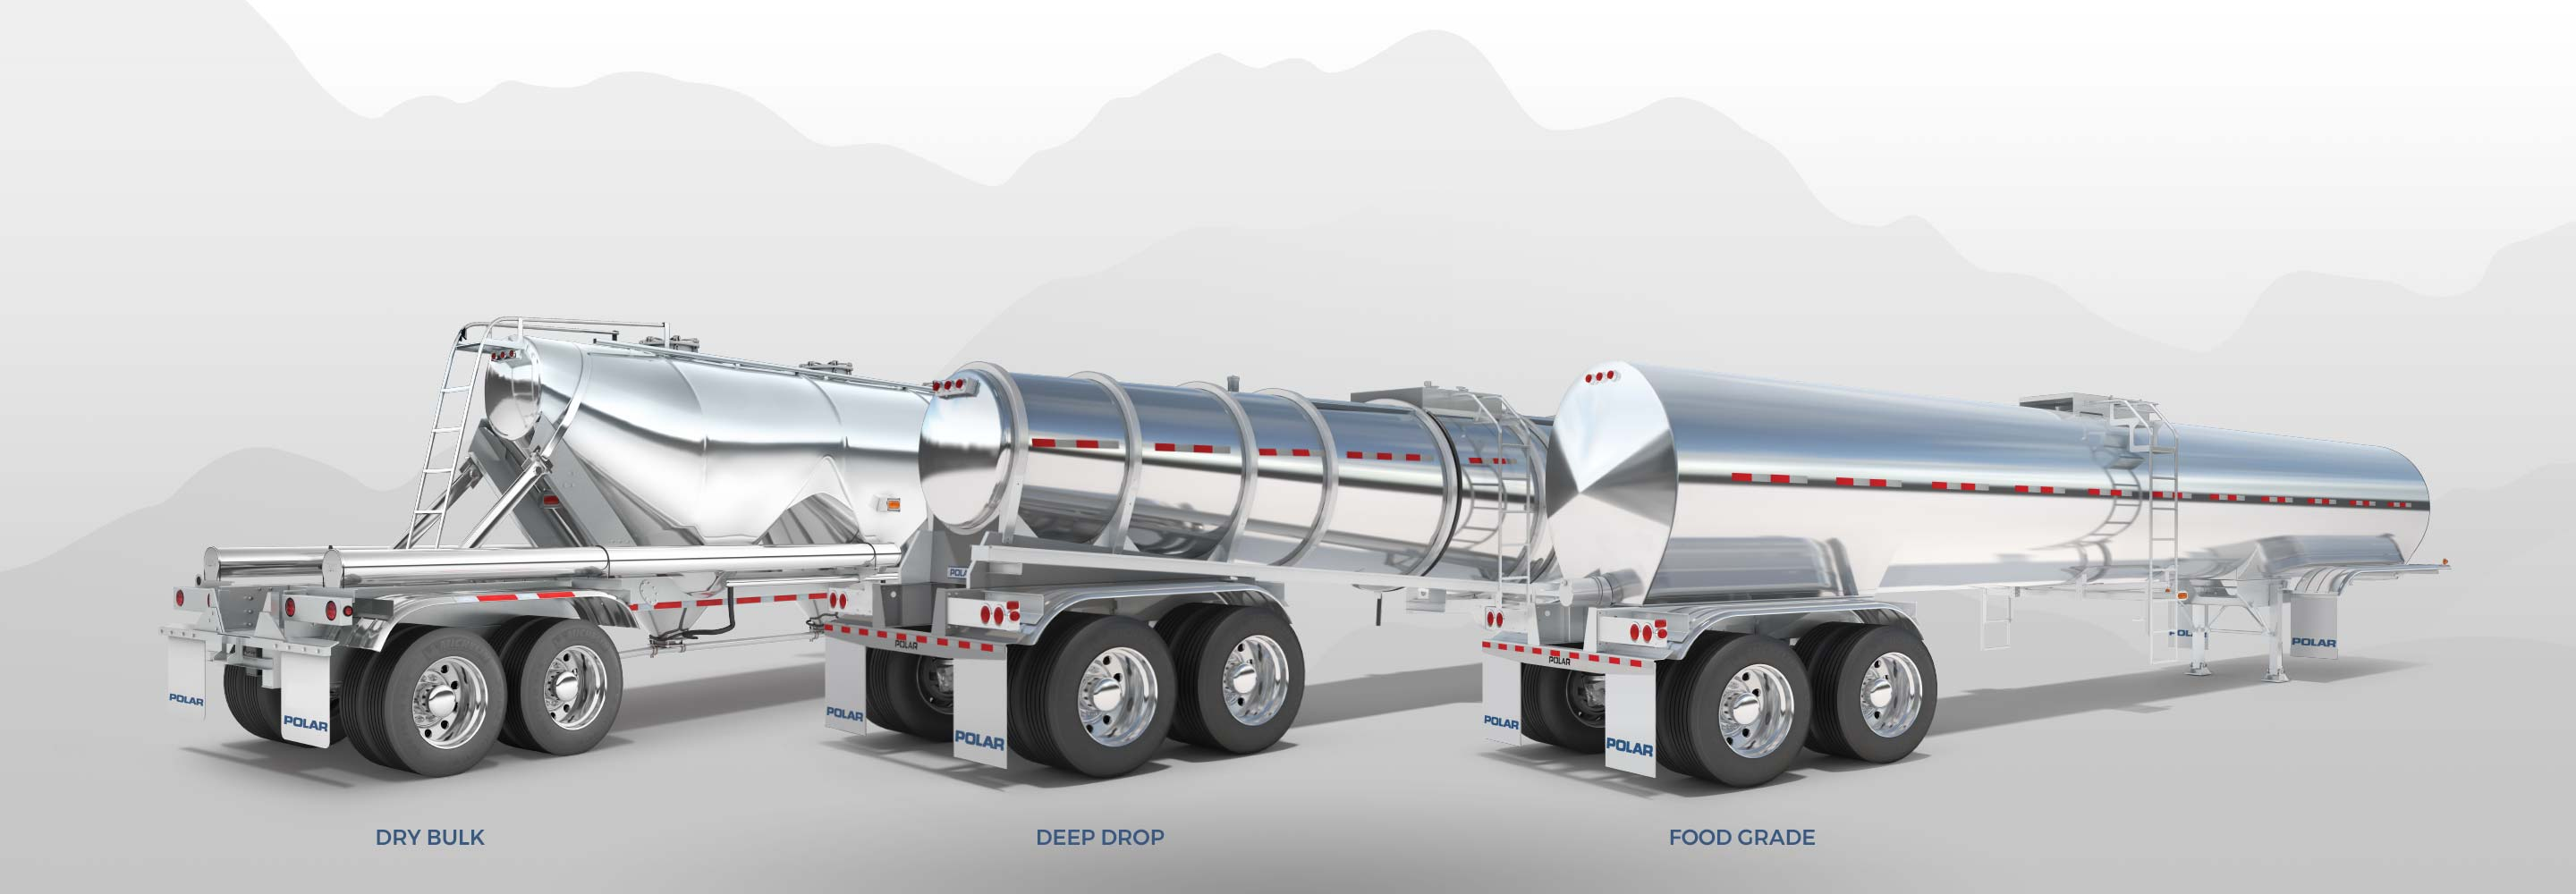 Polar Tank – North America's largest truck trailer